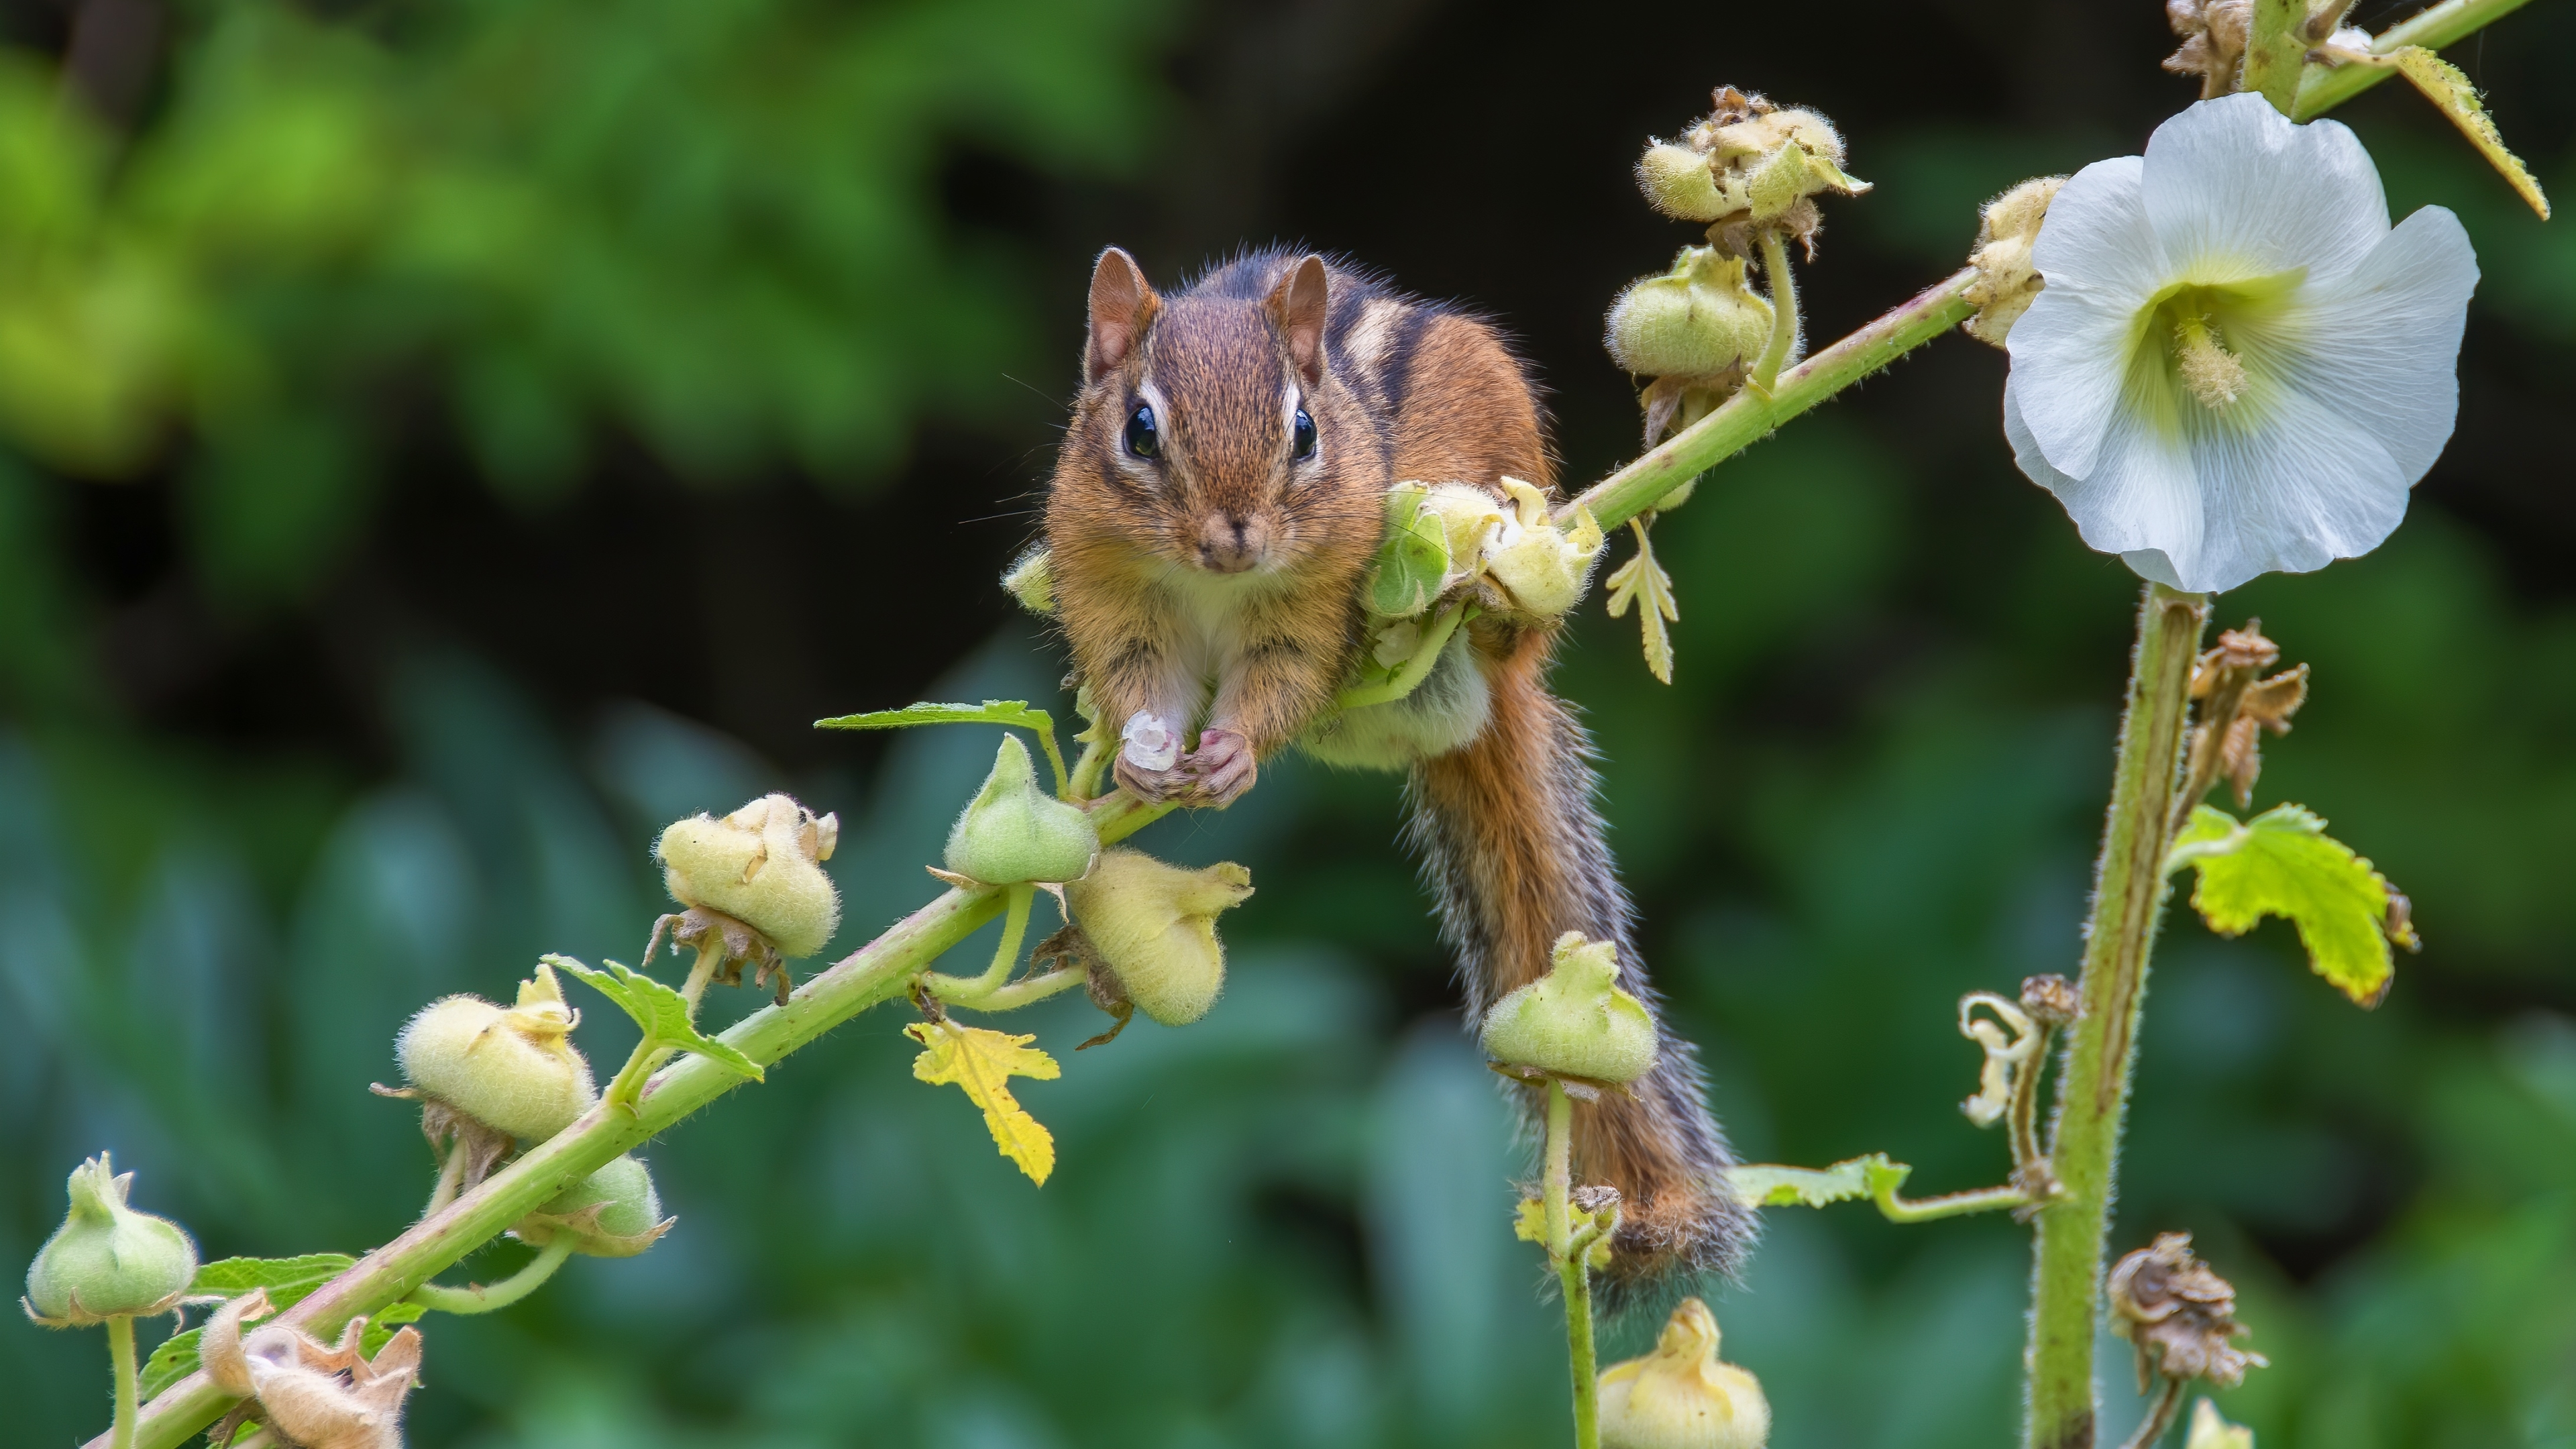 Indian Squirrel 4K Wallpaper | Wallpapers Share